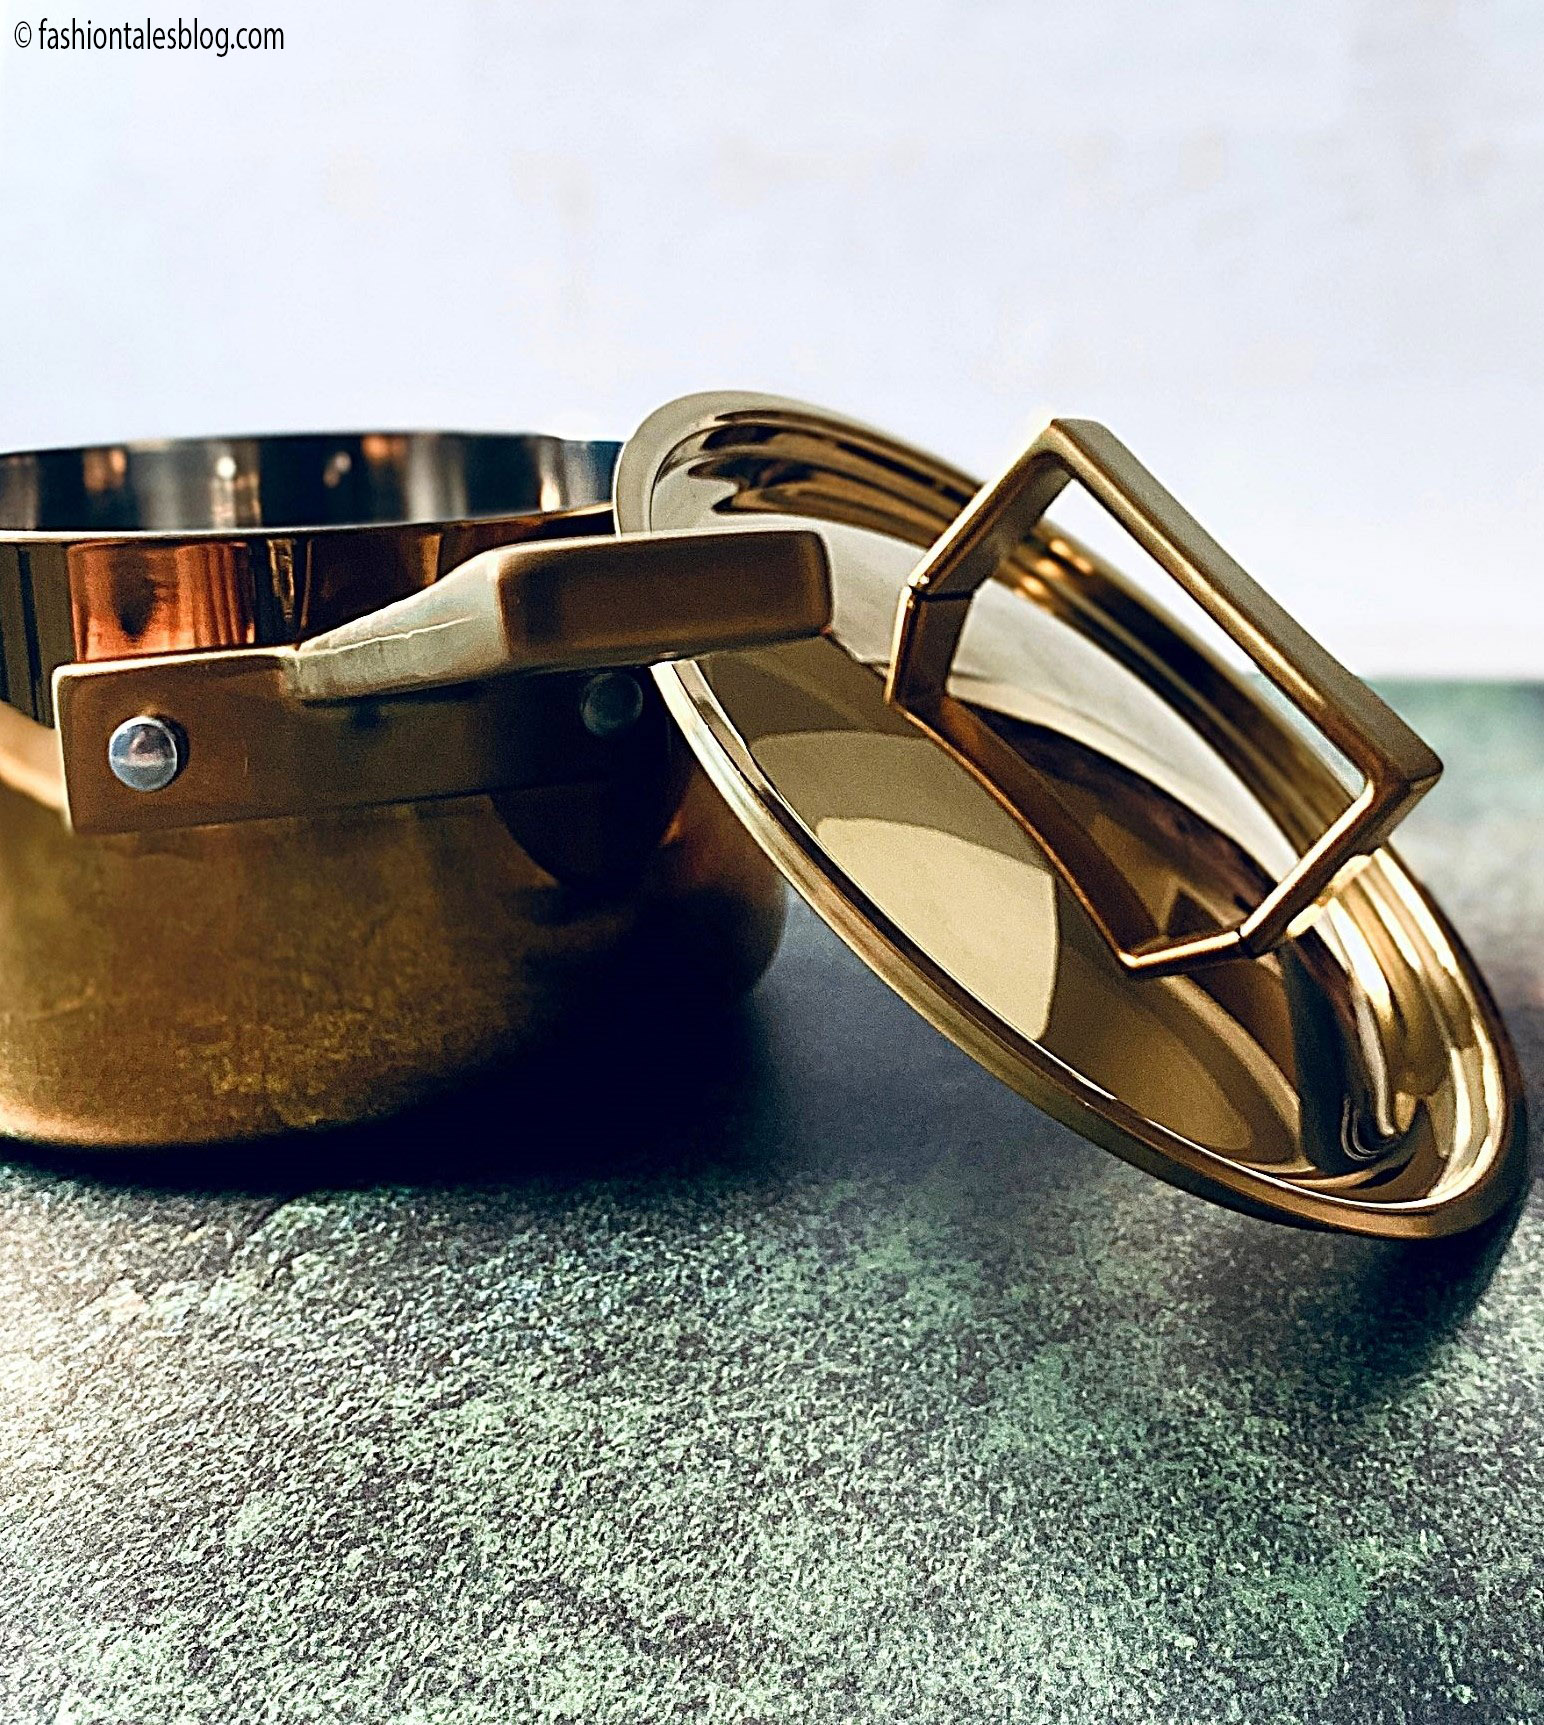 Gold luxury cookware